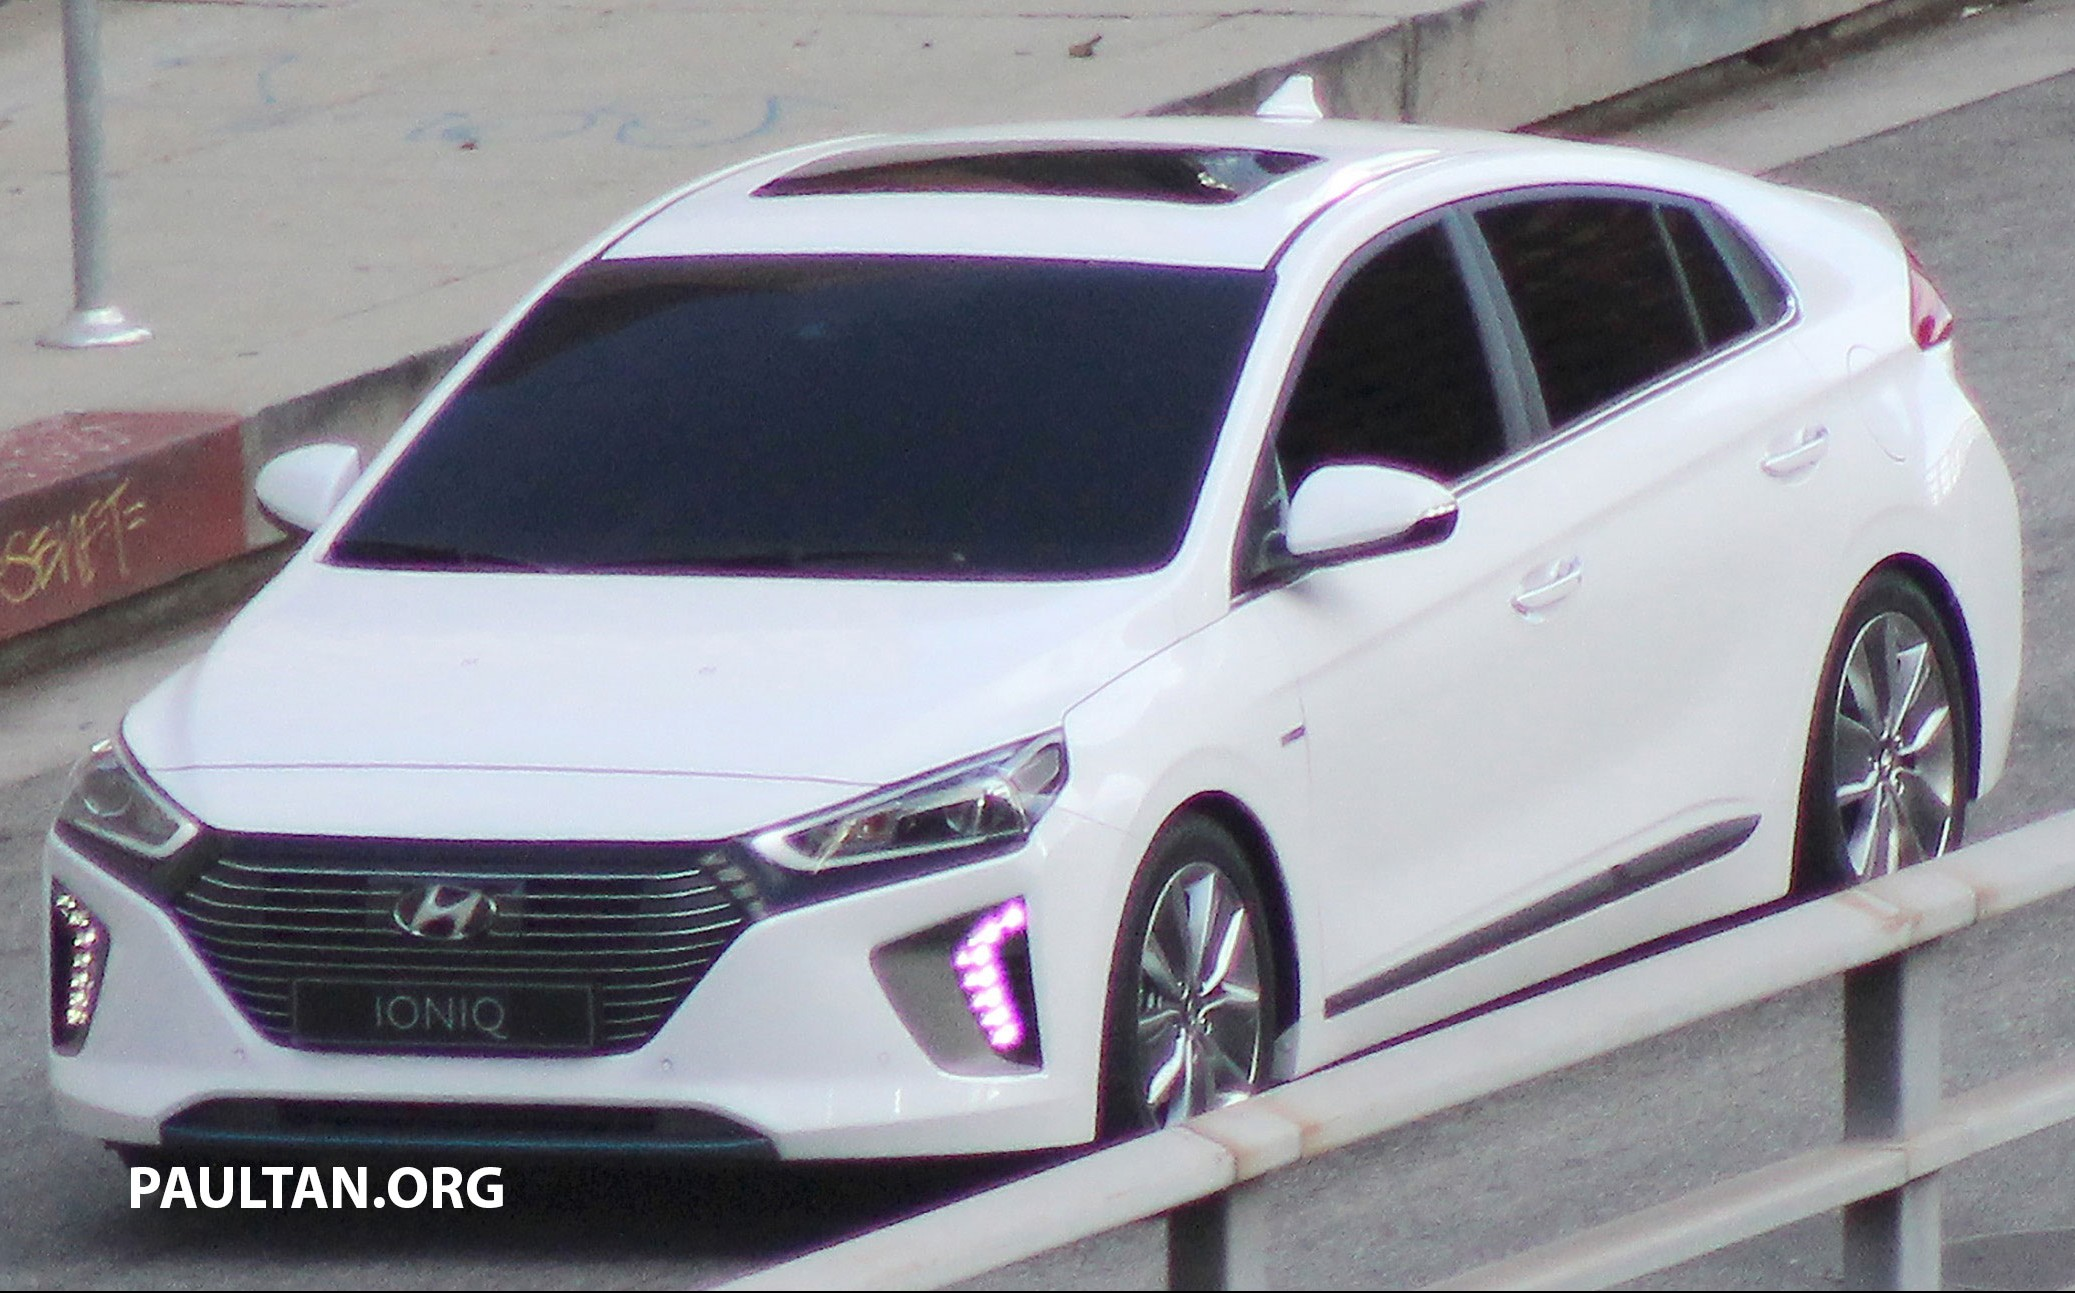 SPIED: Hyundai Ioniq hybrid completely undisguised! Paul ...